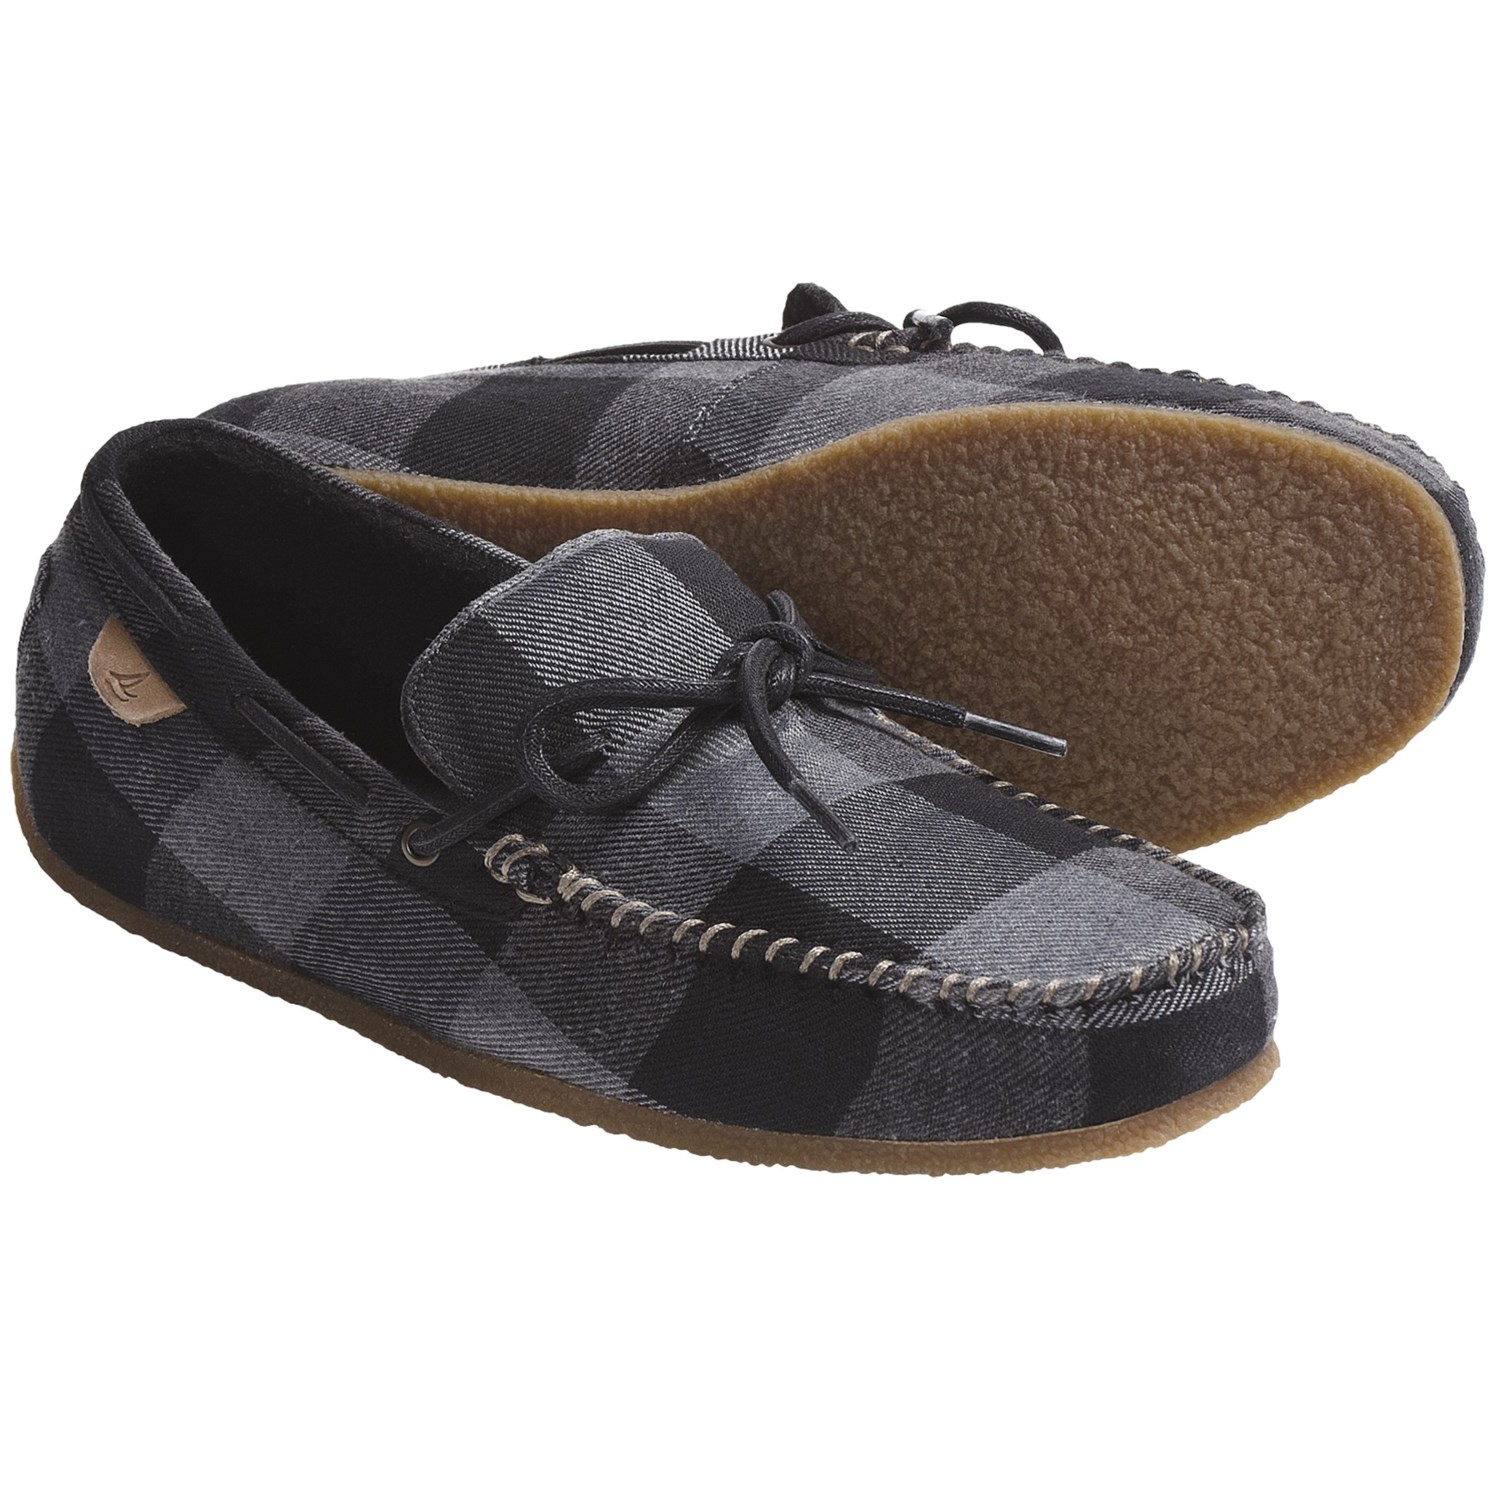 Our men's versatile selection of shoes includes moccasins, driving mocs, slippers, boots, and sandals for the modern man. Take a look at our custom made mocs, a way to personalize your preferences for a handcrafted, perfect fit.